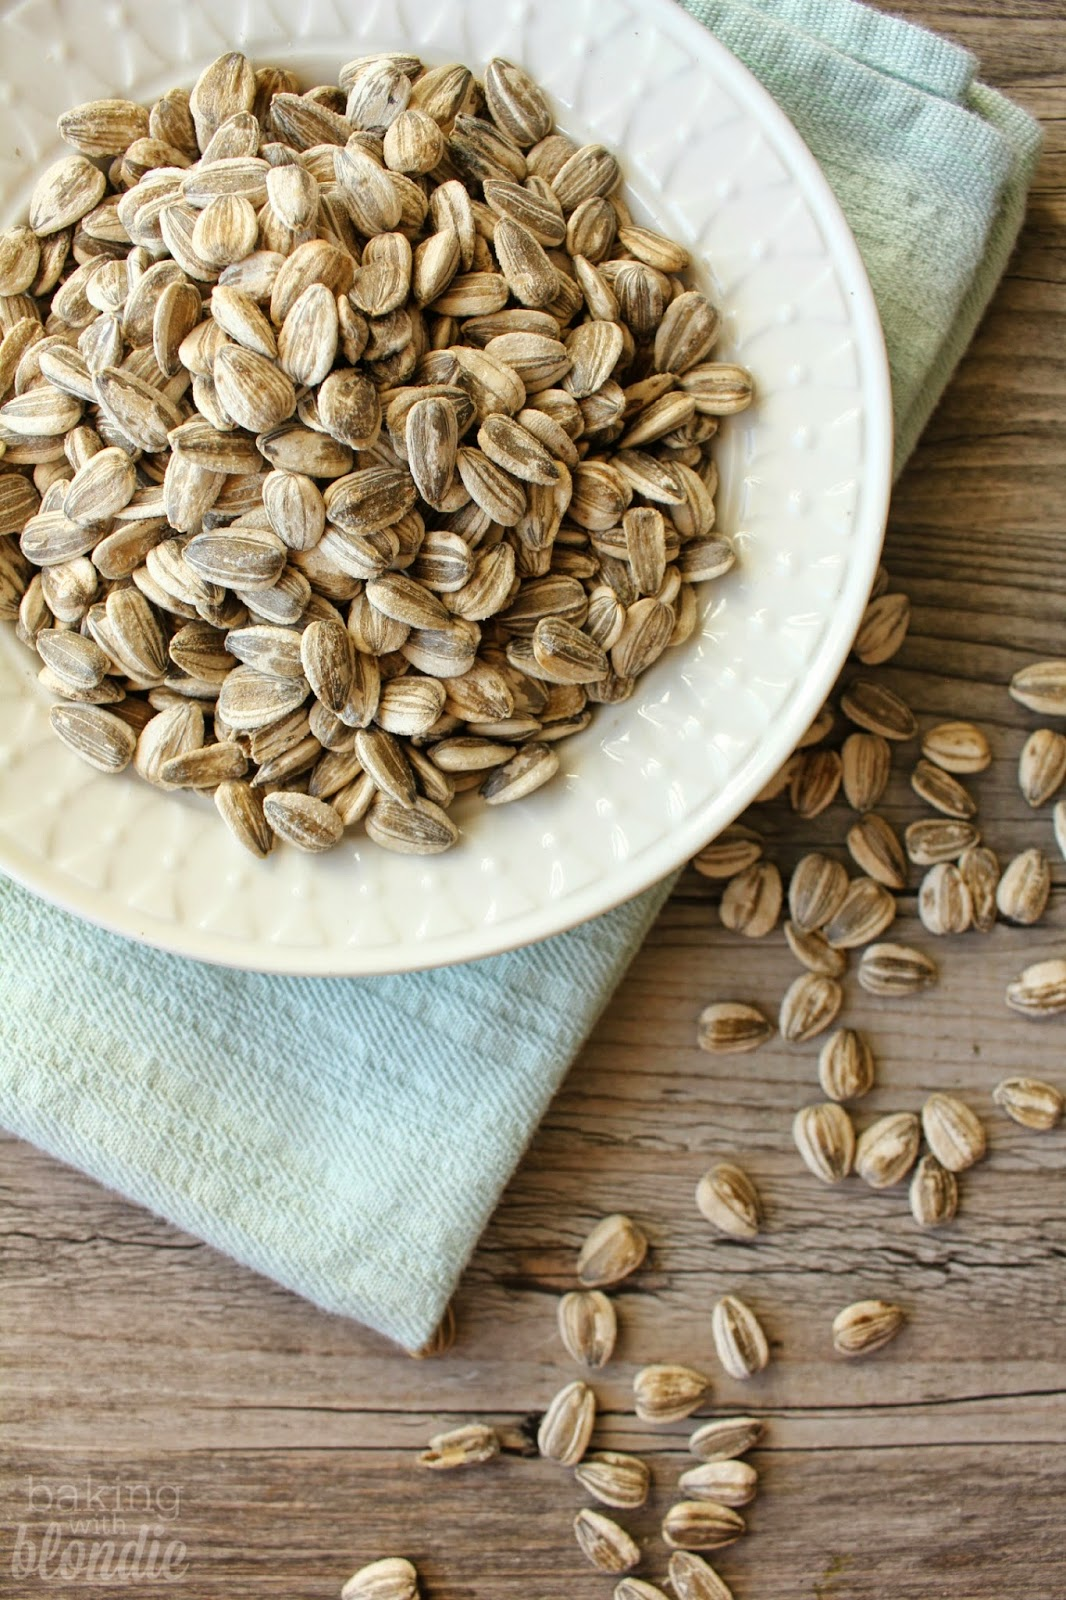 Homemade Roasted Sunflower Seeds